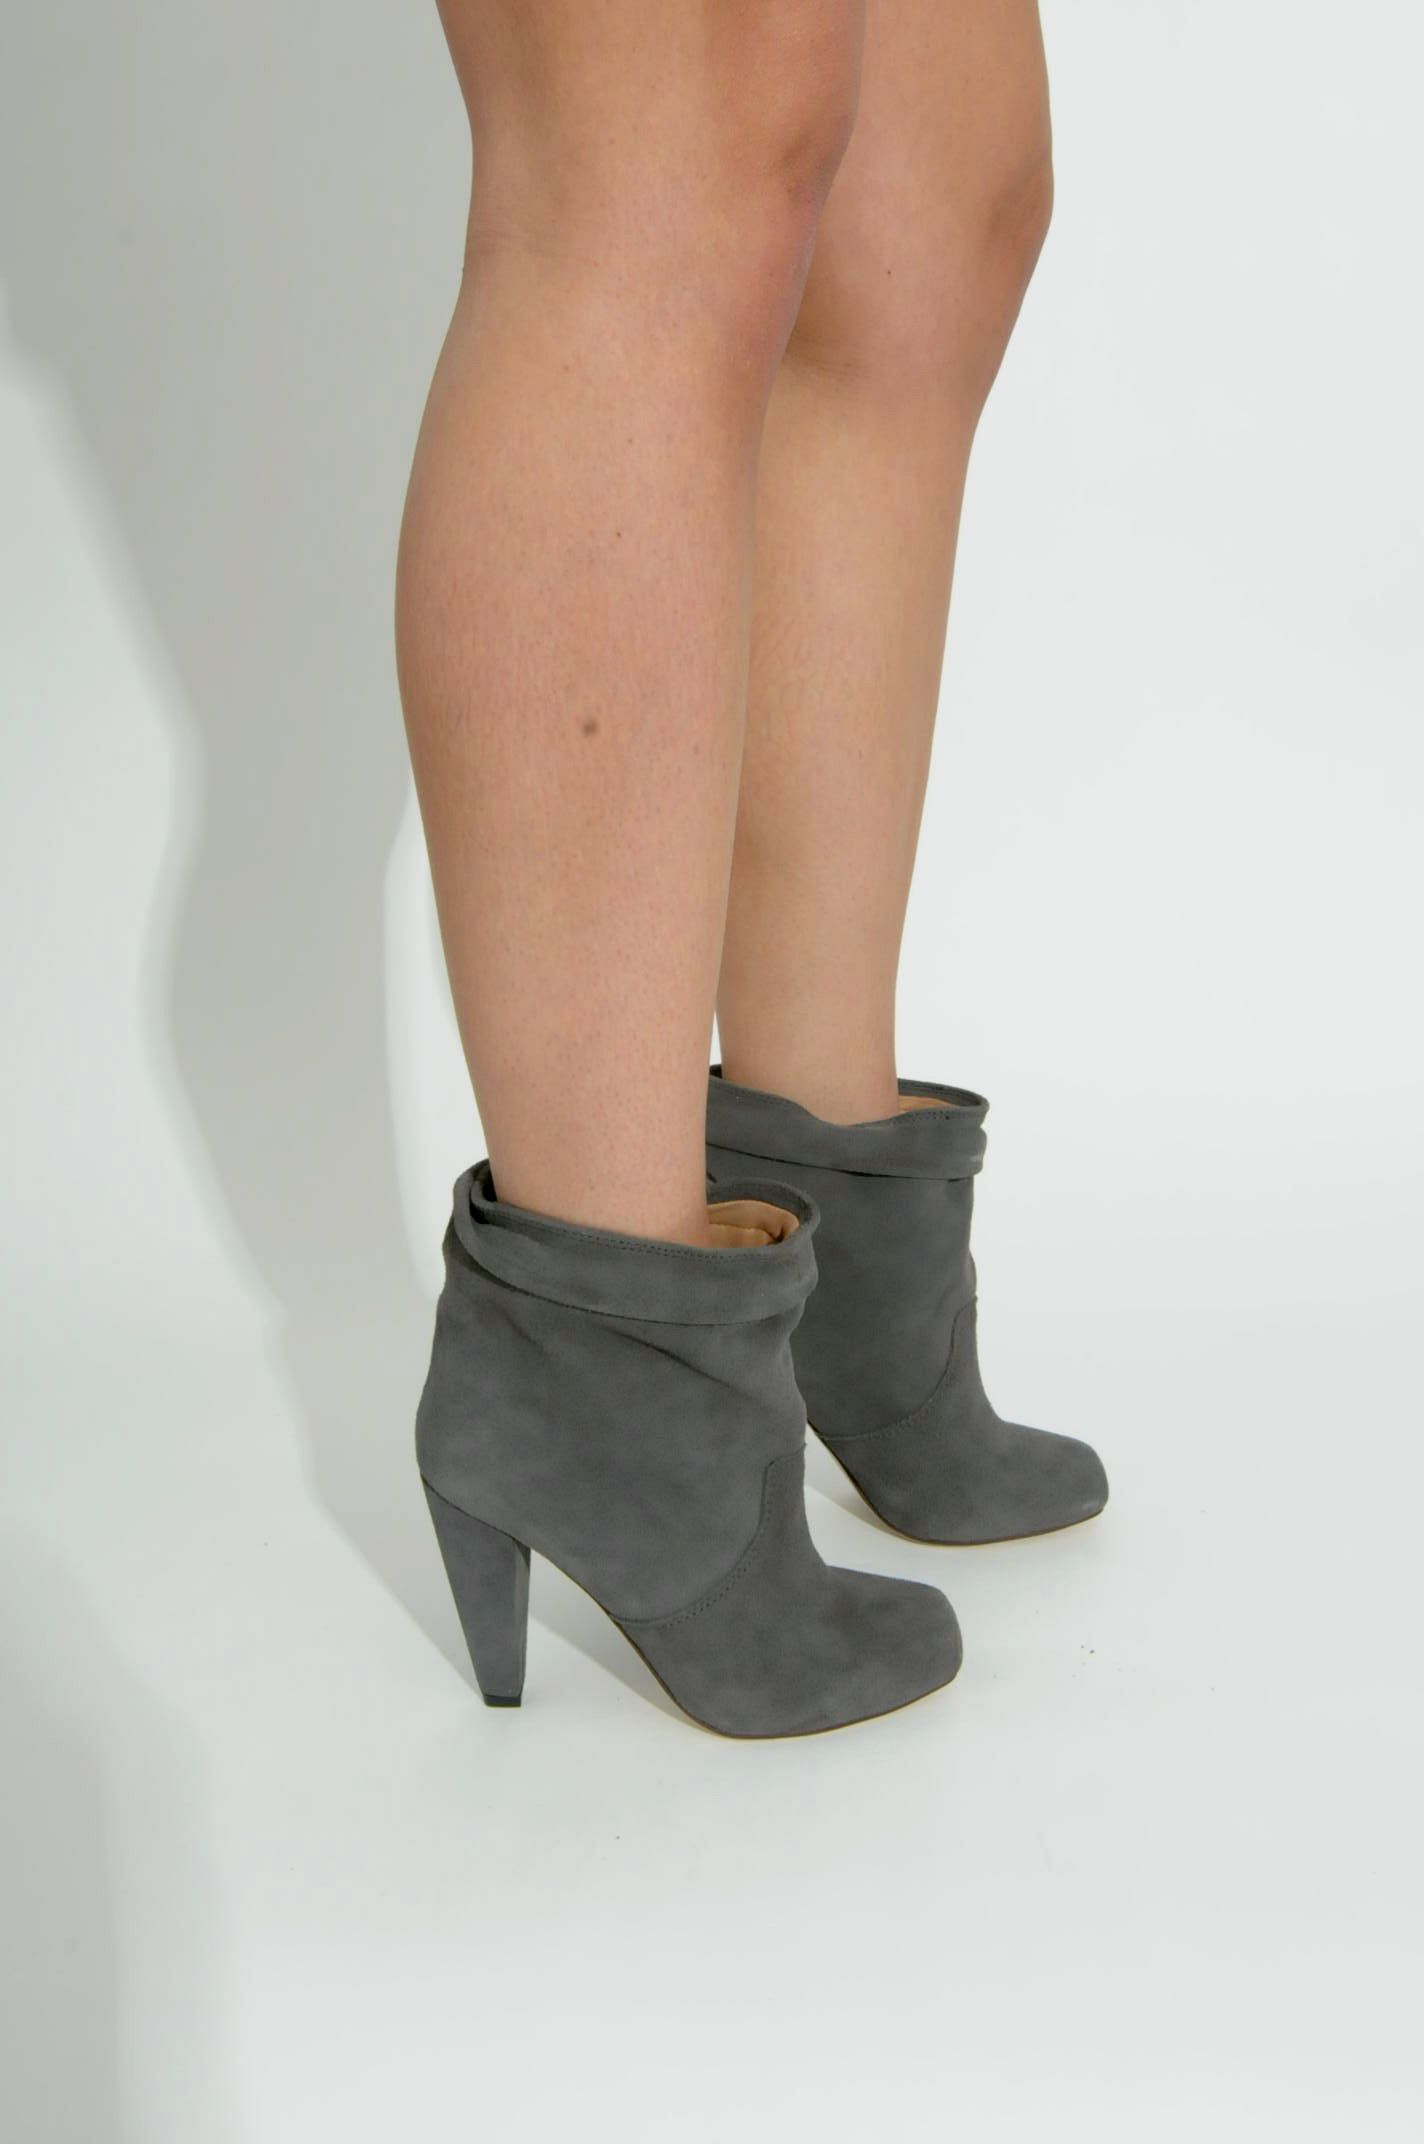 5216 Shrinkable Wide Ankle Boot! | KATHRYN AMBERLEIGH